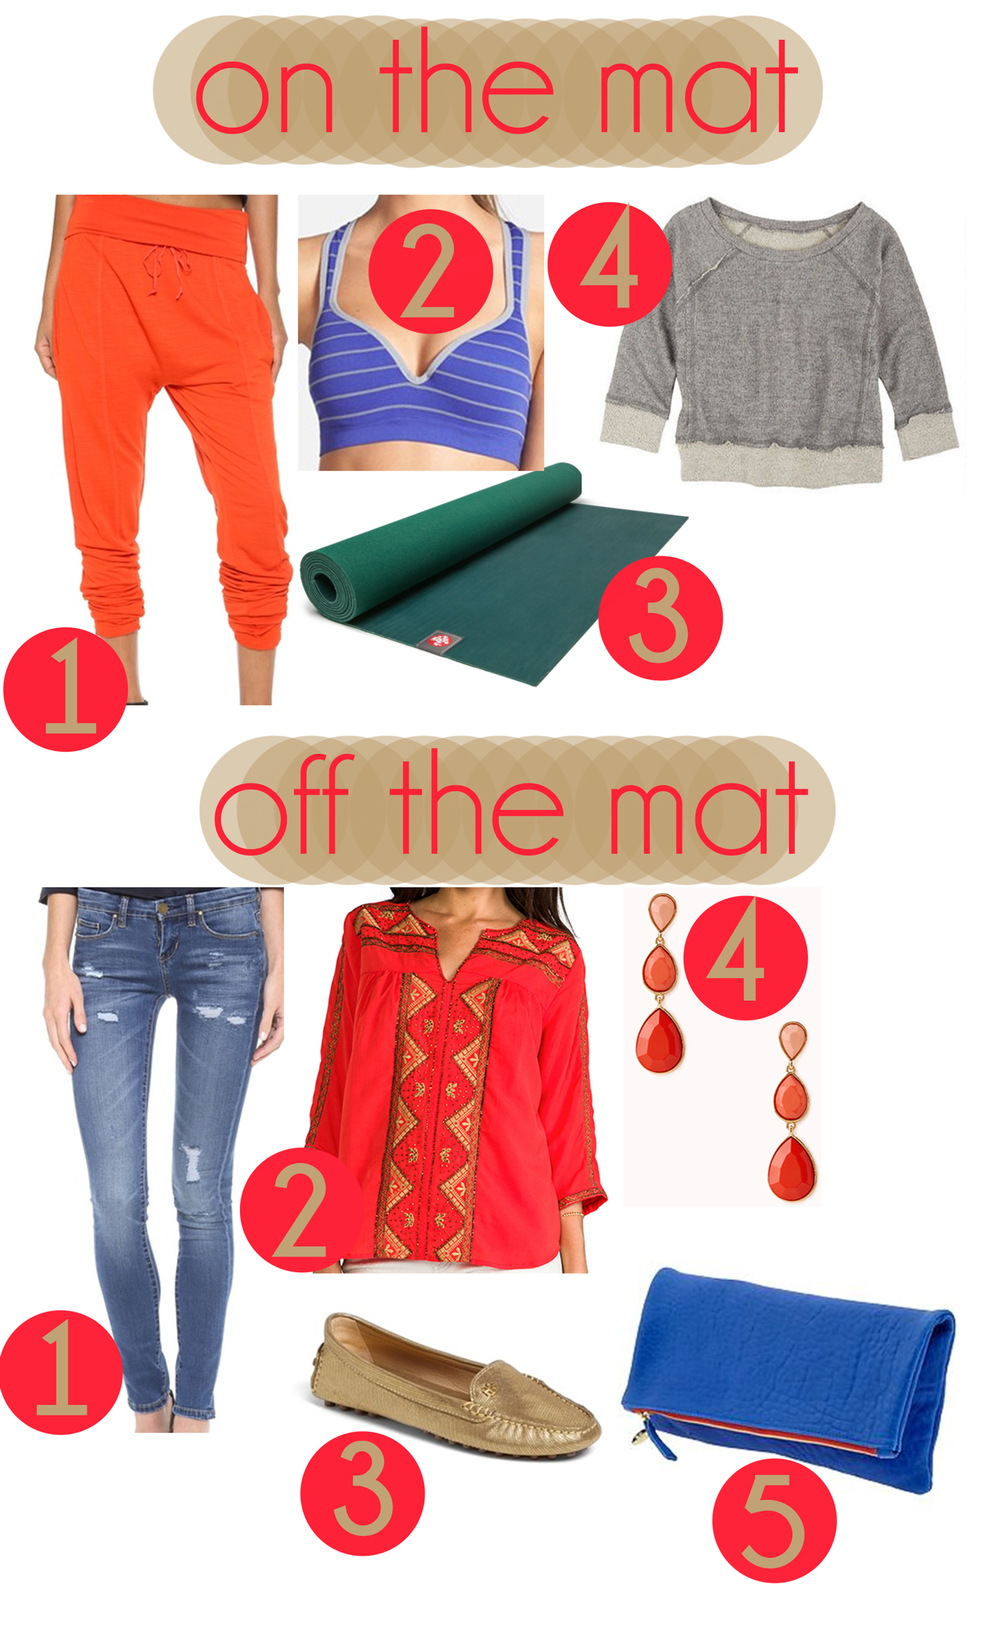 Pin it! Clothes for on the mat and off the mat